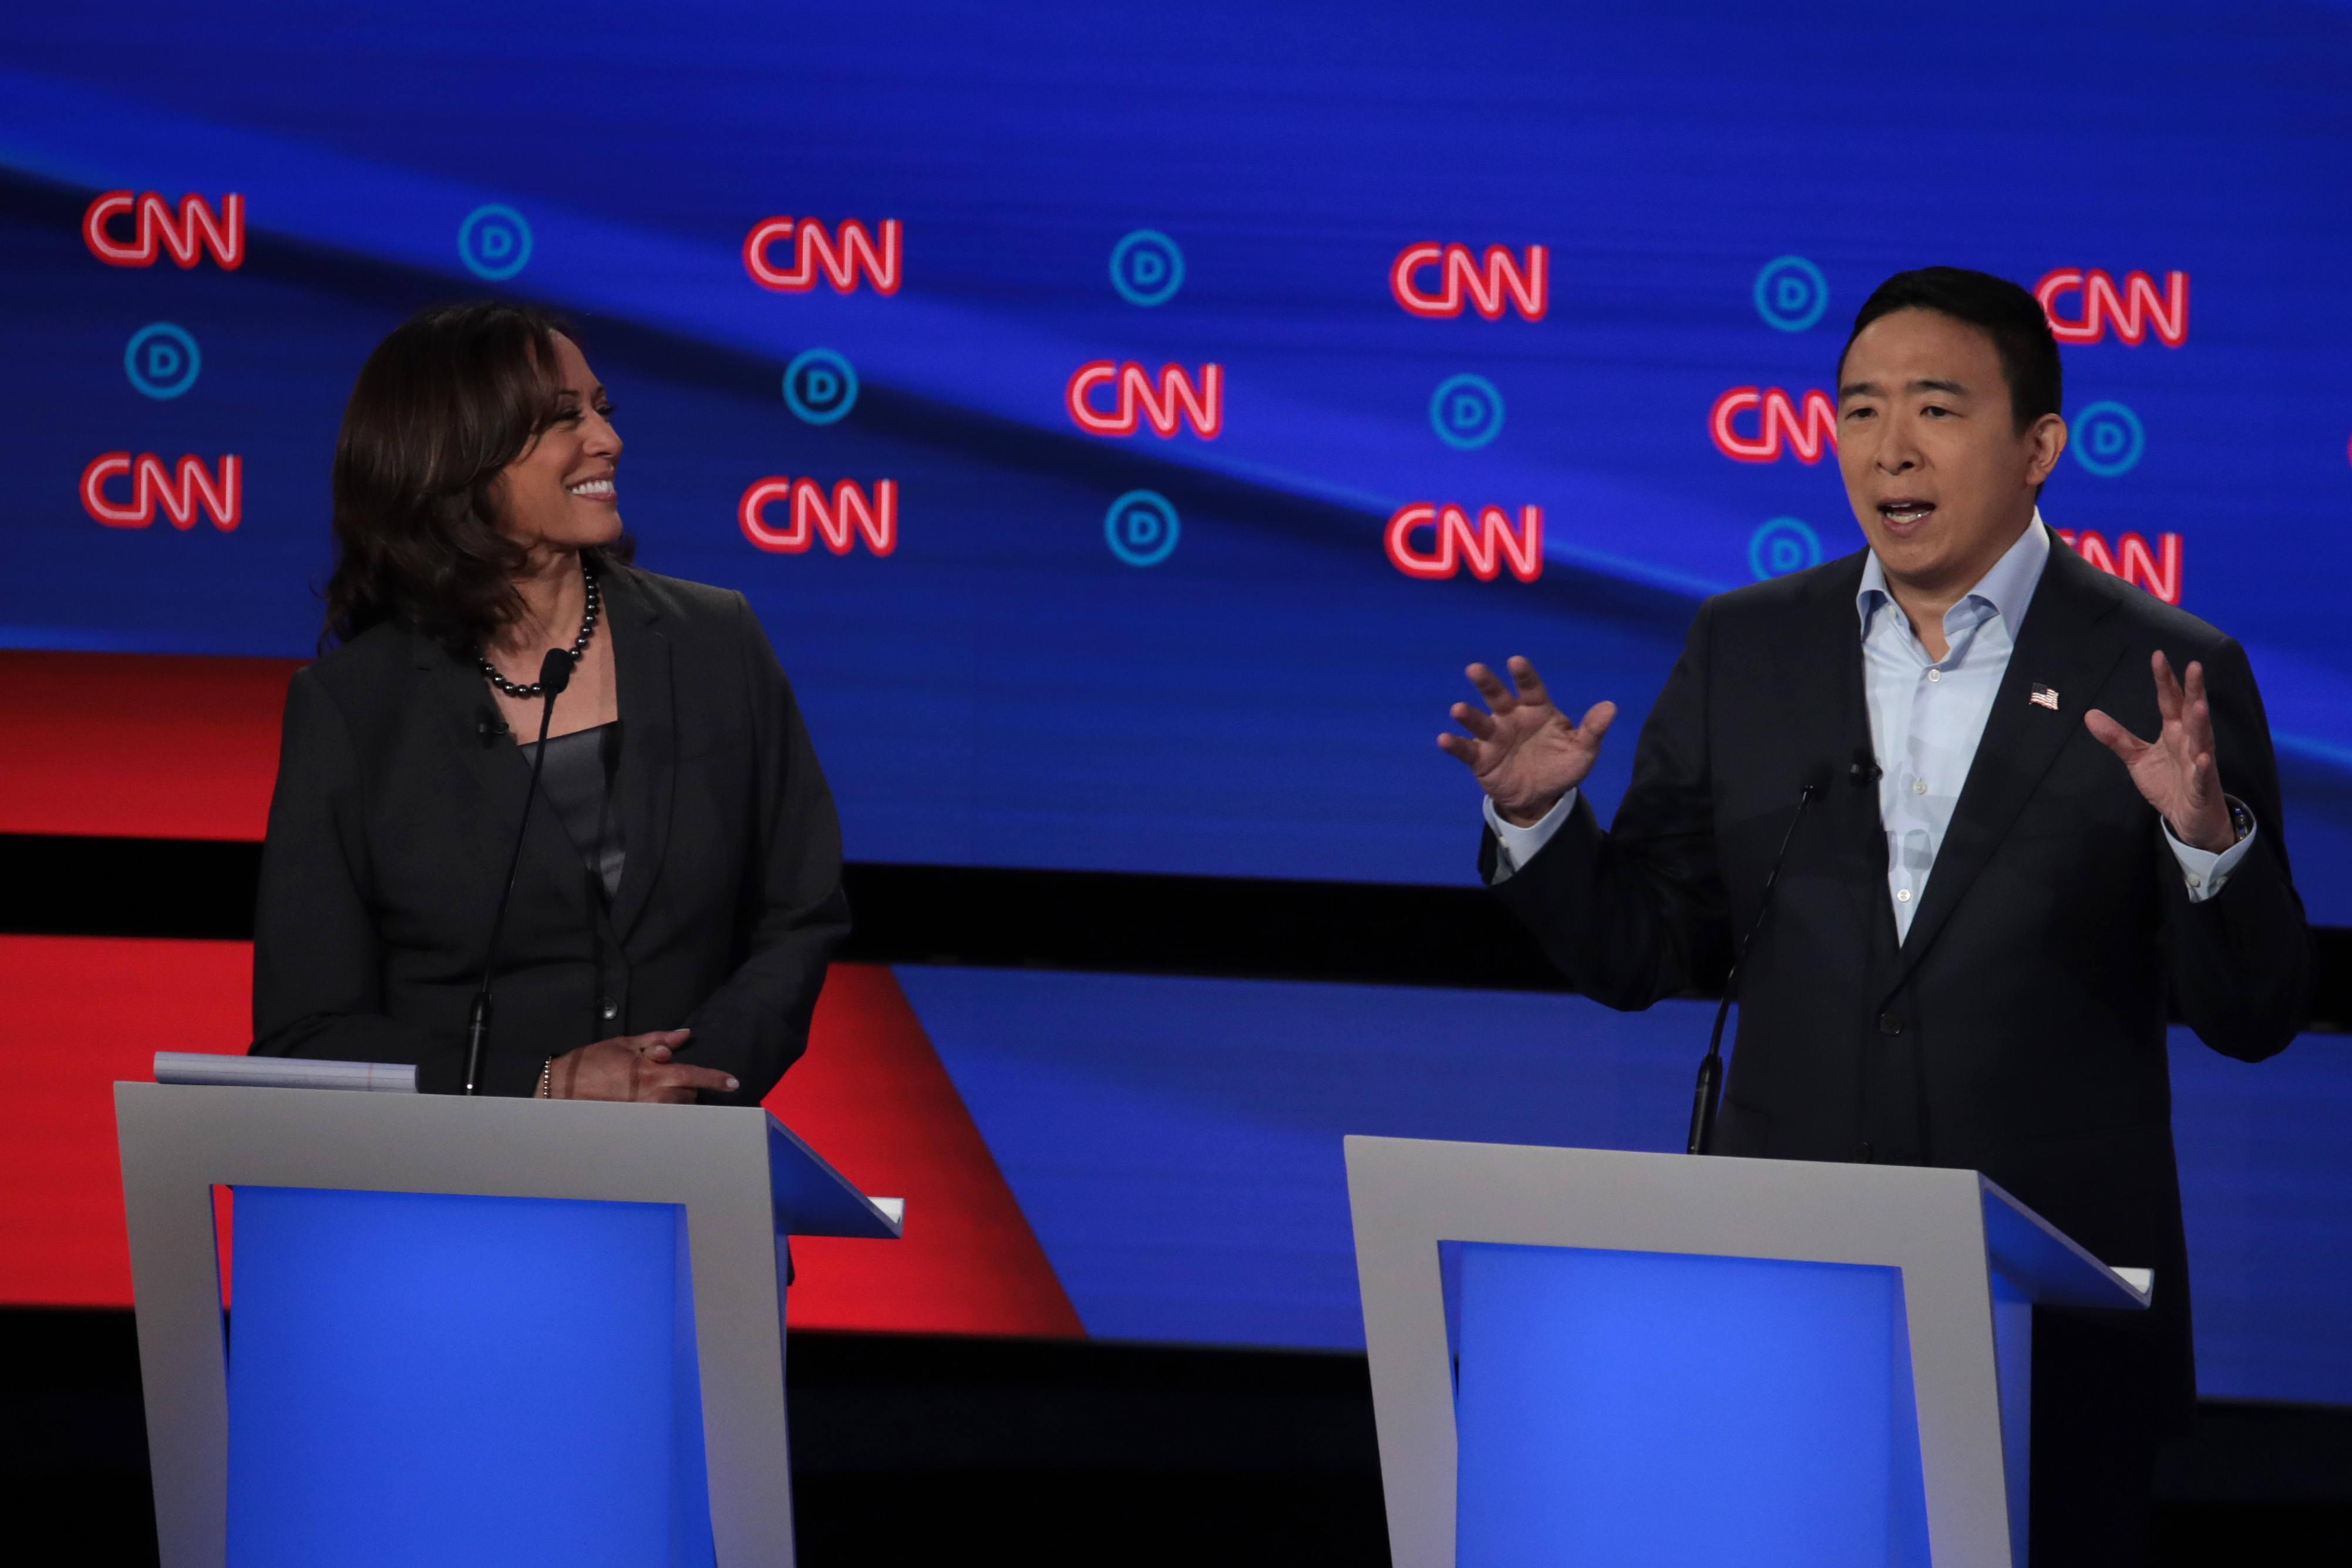 Democratic presidential candidate former tech executive Andrew Yang speaks while Sen. Kamala Harris listens at the Democratic Presidential Debate at the Fox Theatre July 31, 2019 in Detroit, Michigan. (Photo by Scott Olson/Getty Images)